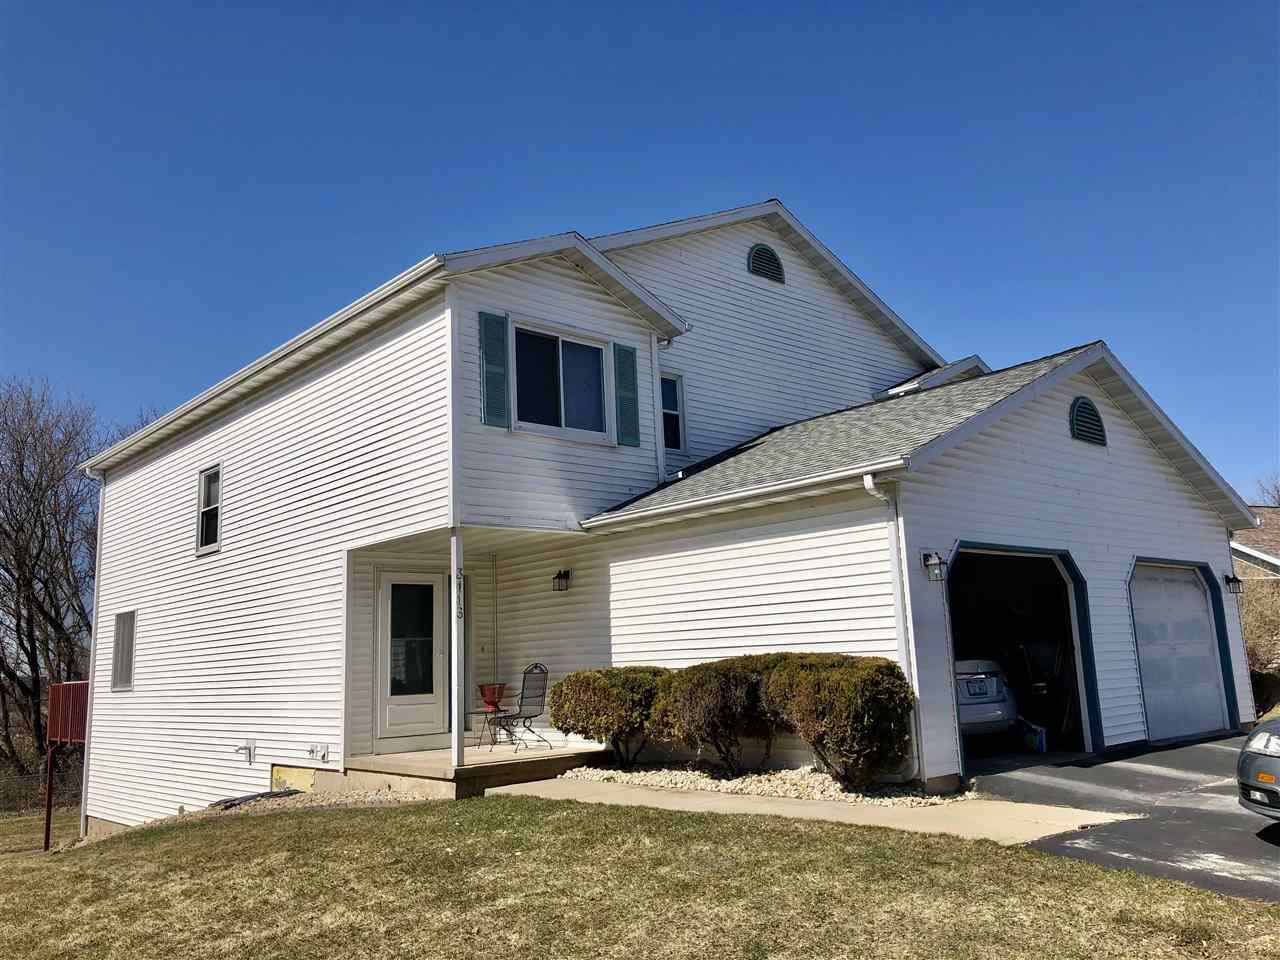 3116-3118 Old Gate Rd, Madison, WI 53704 - #: 1903995